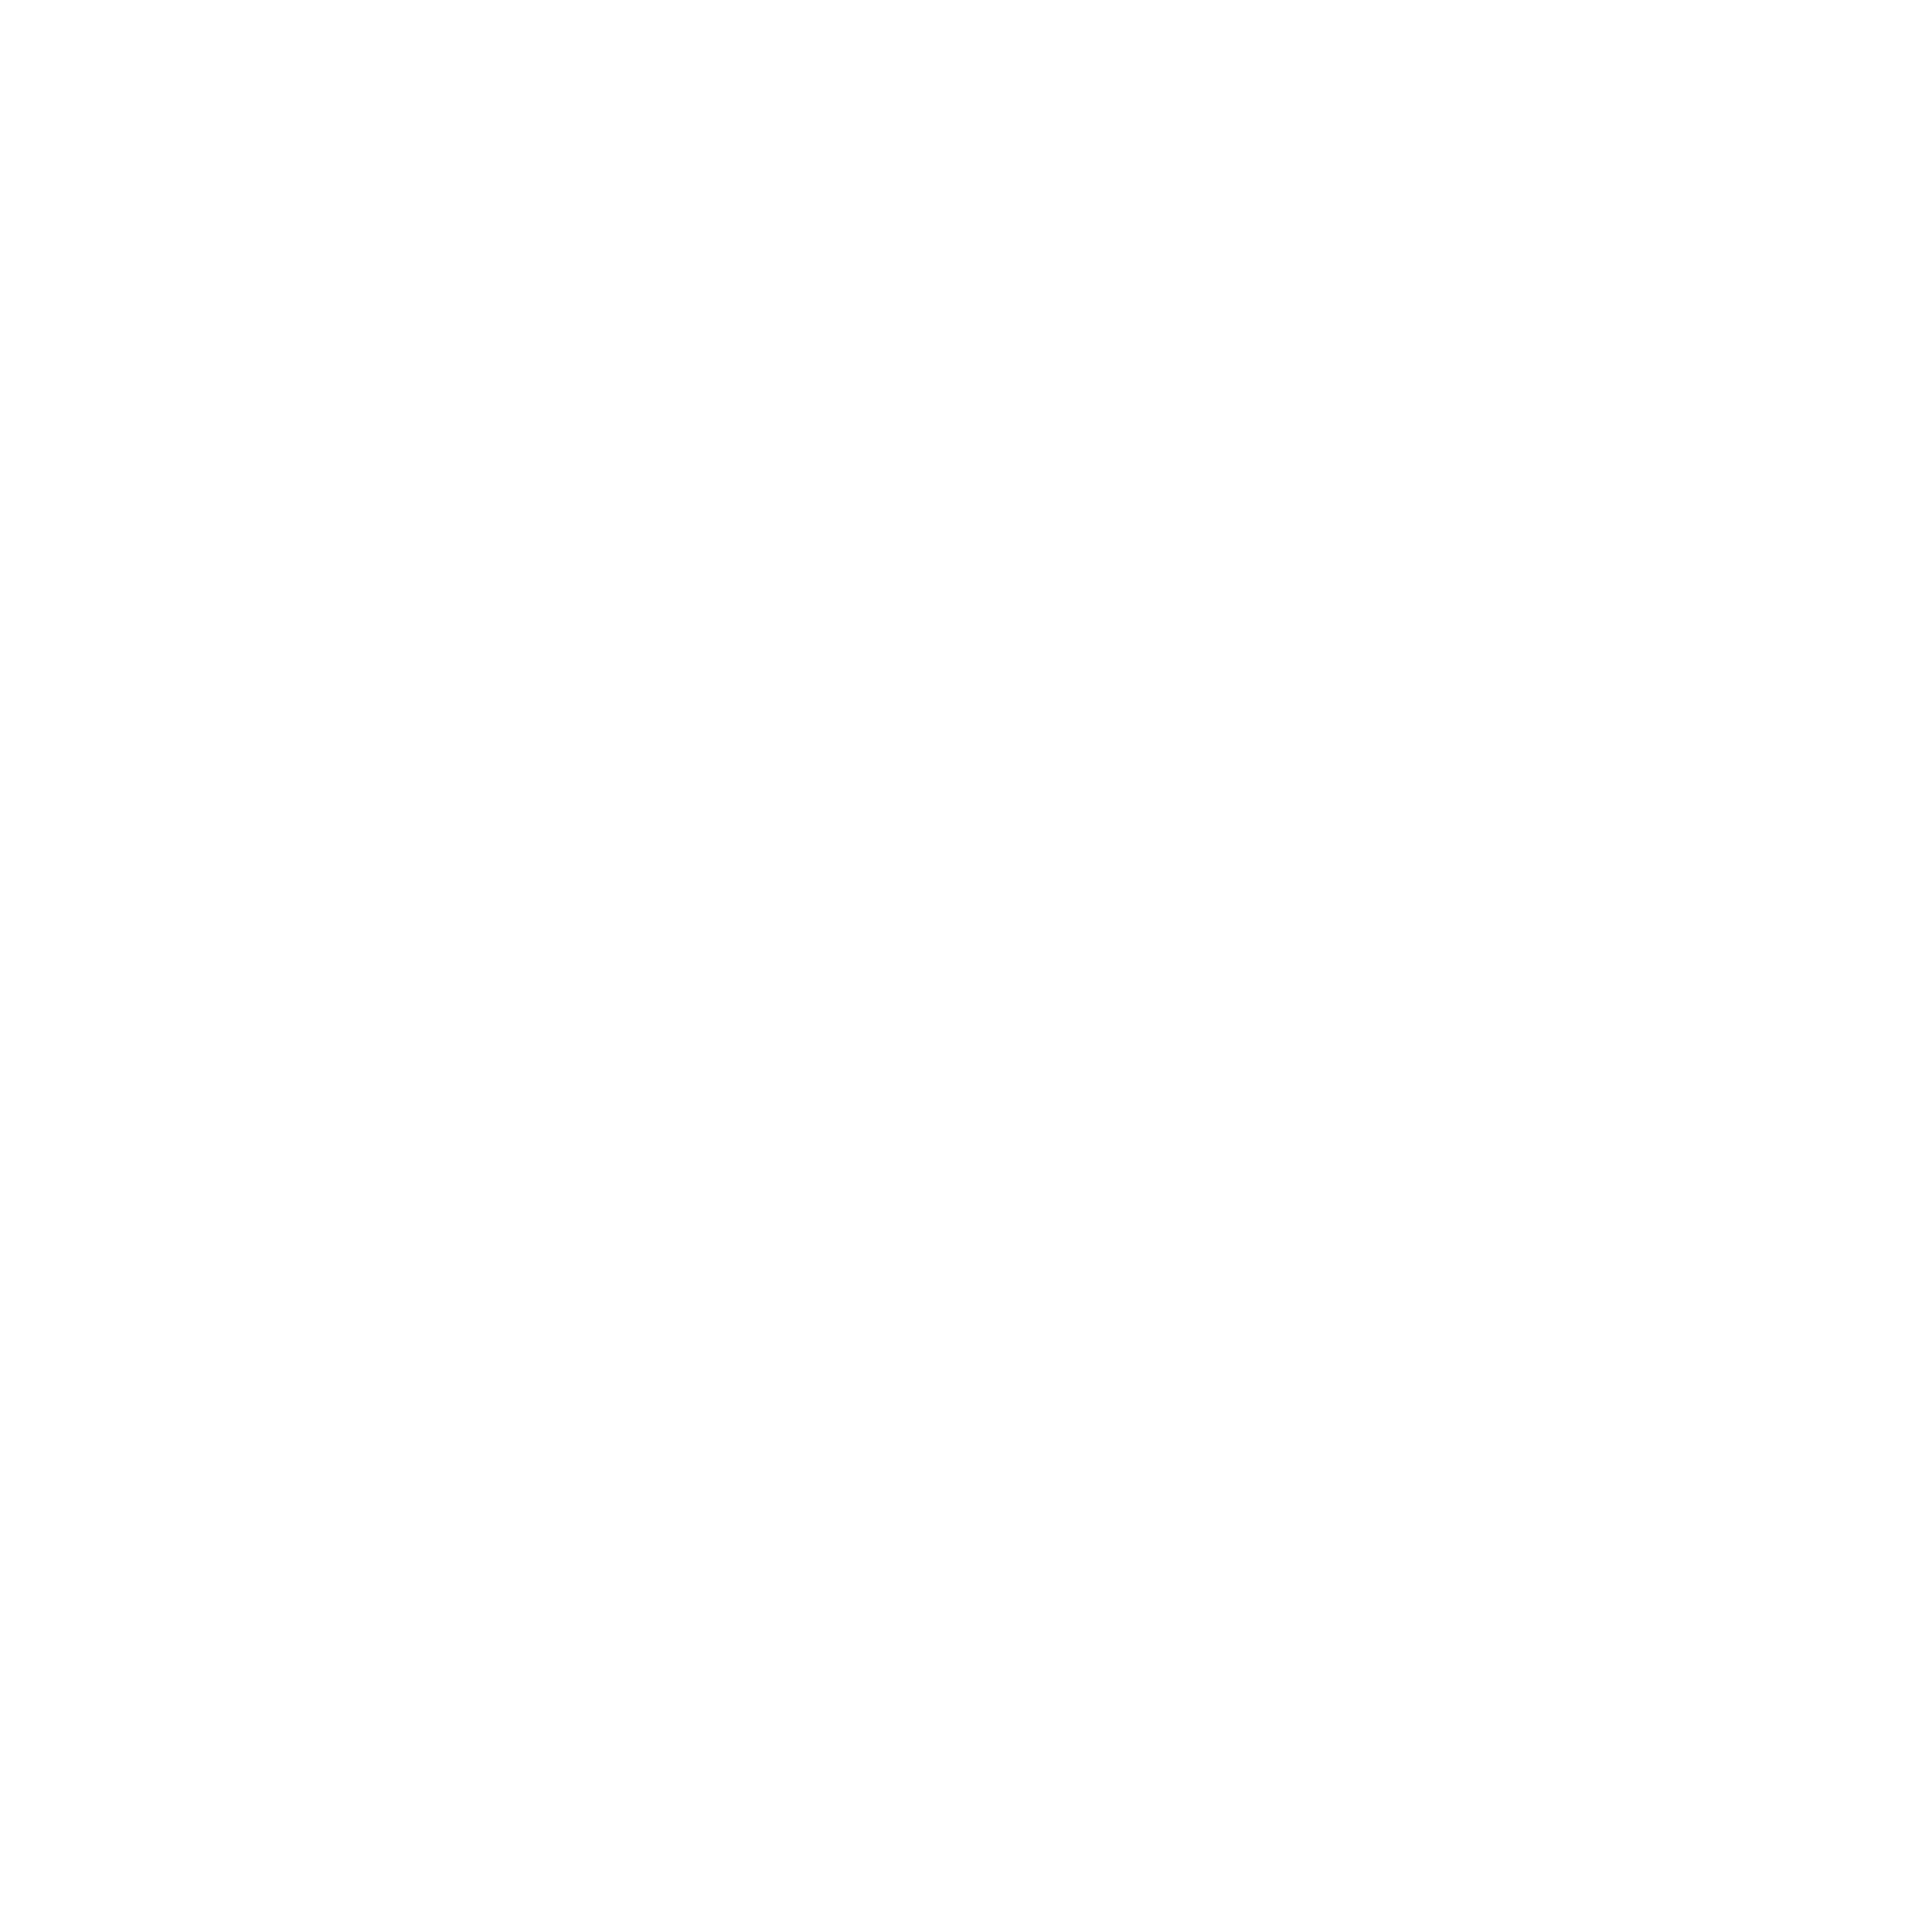 24-7 Store.png